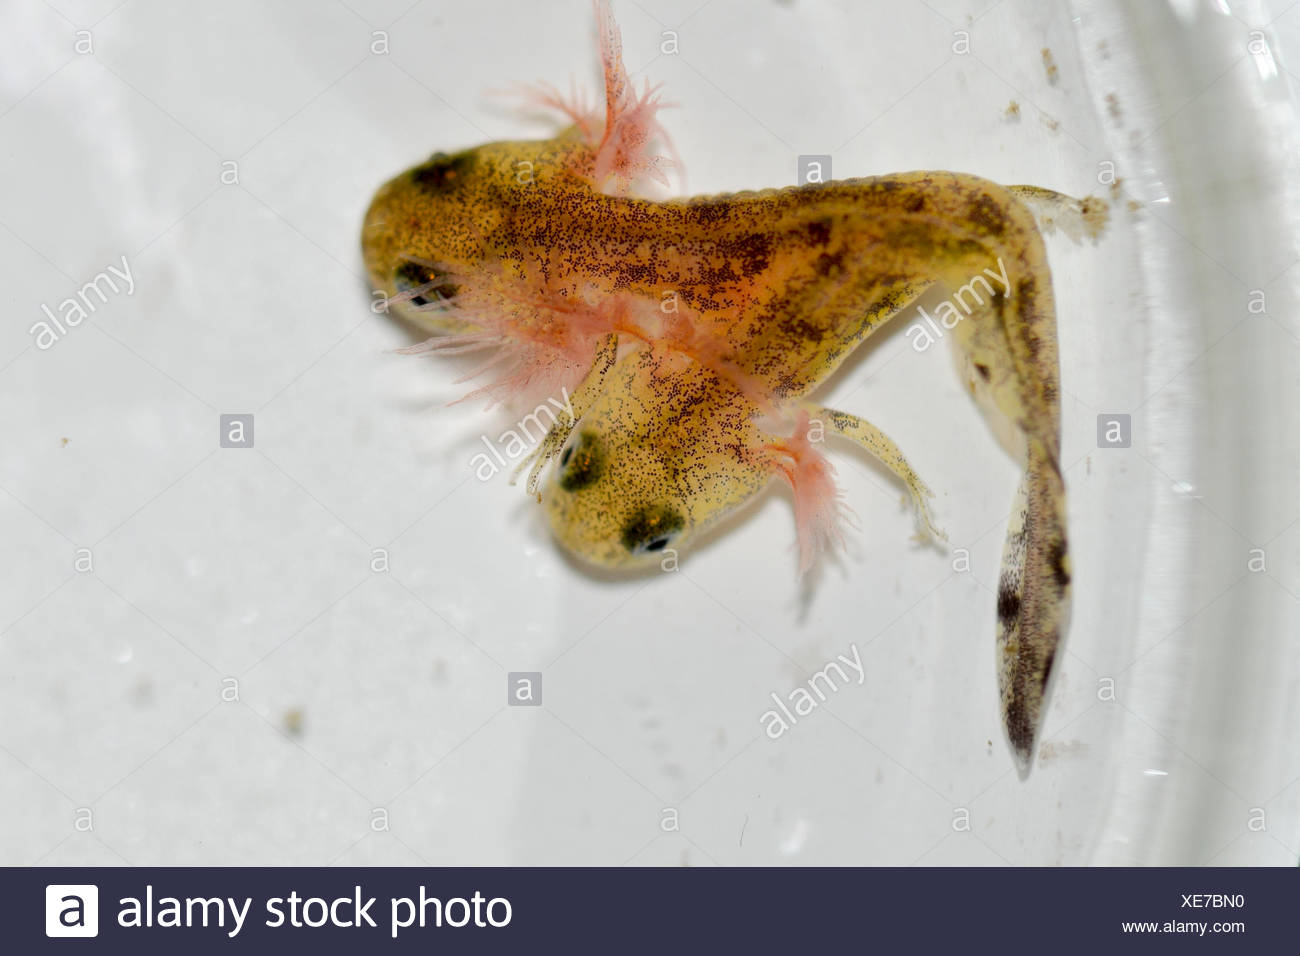 Two-headed Near Eastern fire salamander (Salamandra infraimmaculata) tadpole that was born last week in a community ecology lab at the University of Haifa, Israel.both heads of the tadpole are moving, but only one has been observed snapping up insect larvae. - Stock Image